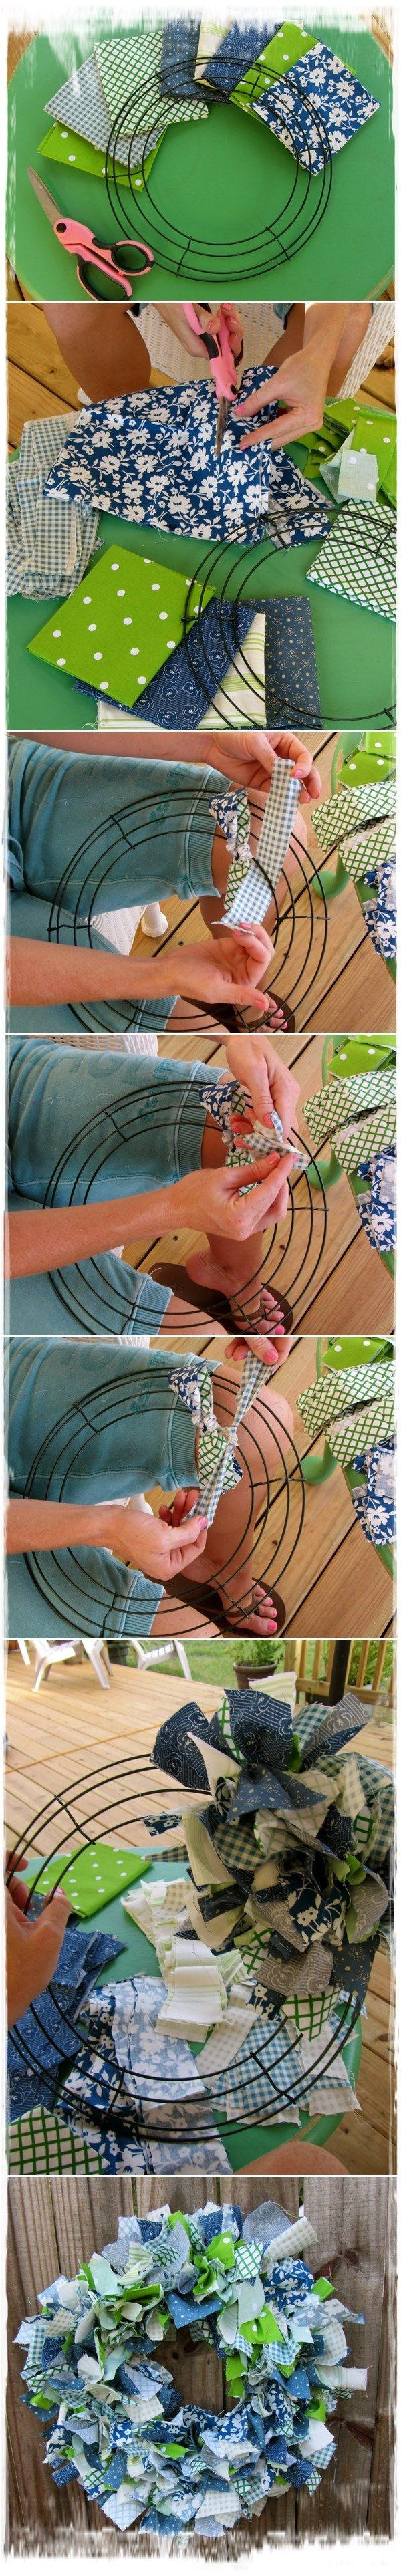 DIY-Fabric-Wreath-Tutorial.jpg (600×3854)